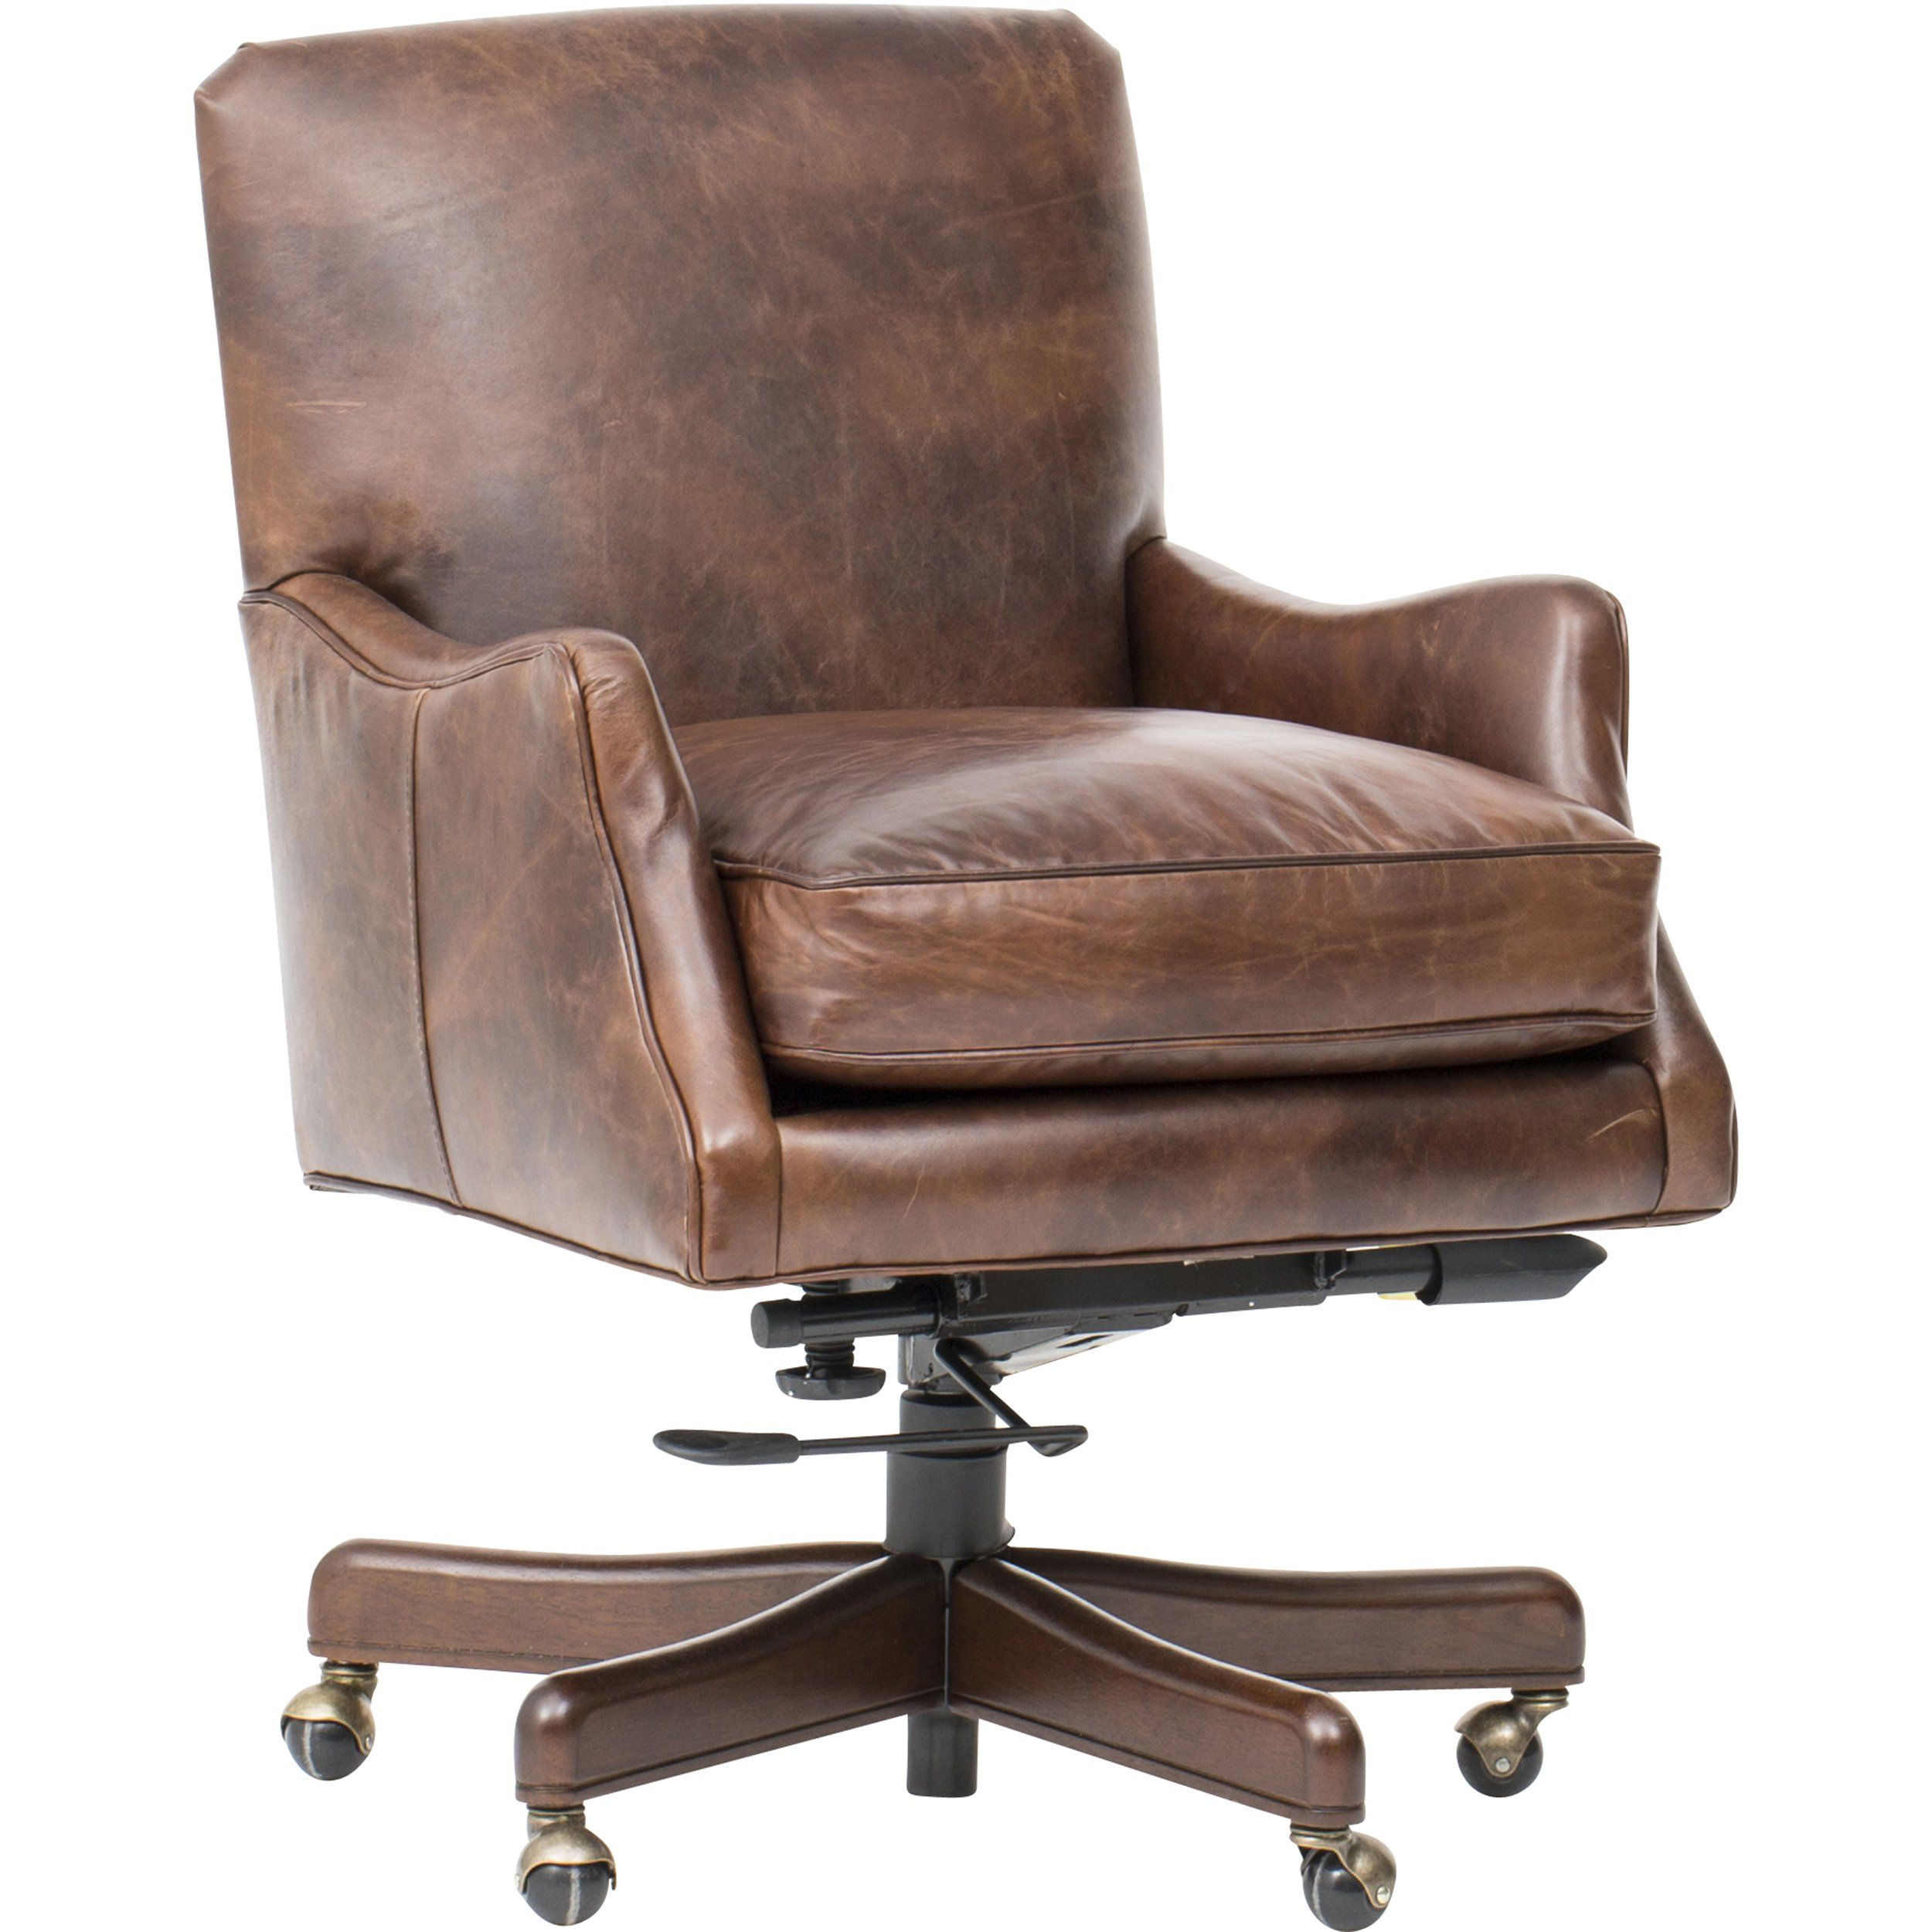 Imperial empire tilt swivel leather chair with images